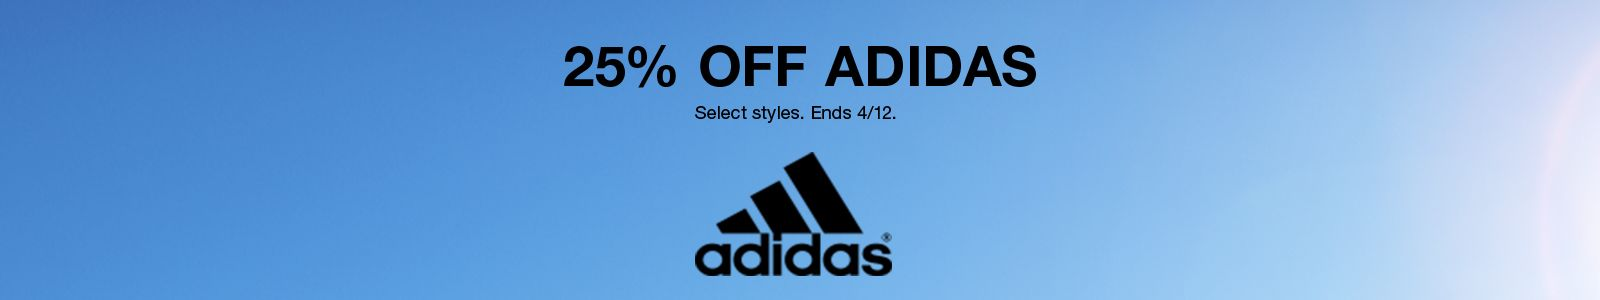 25% Off Adidas, Select styles, Ends 4/12